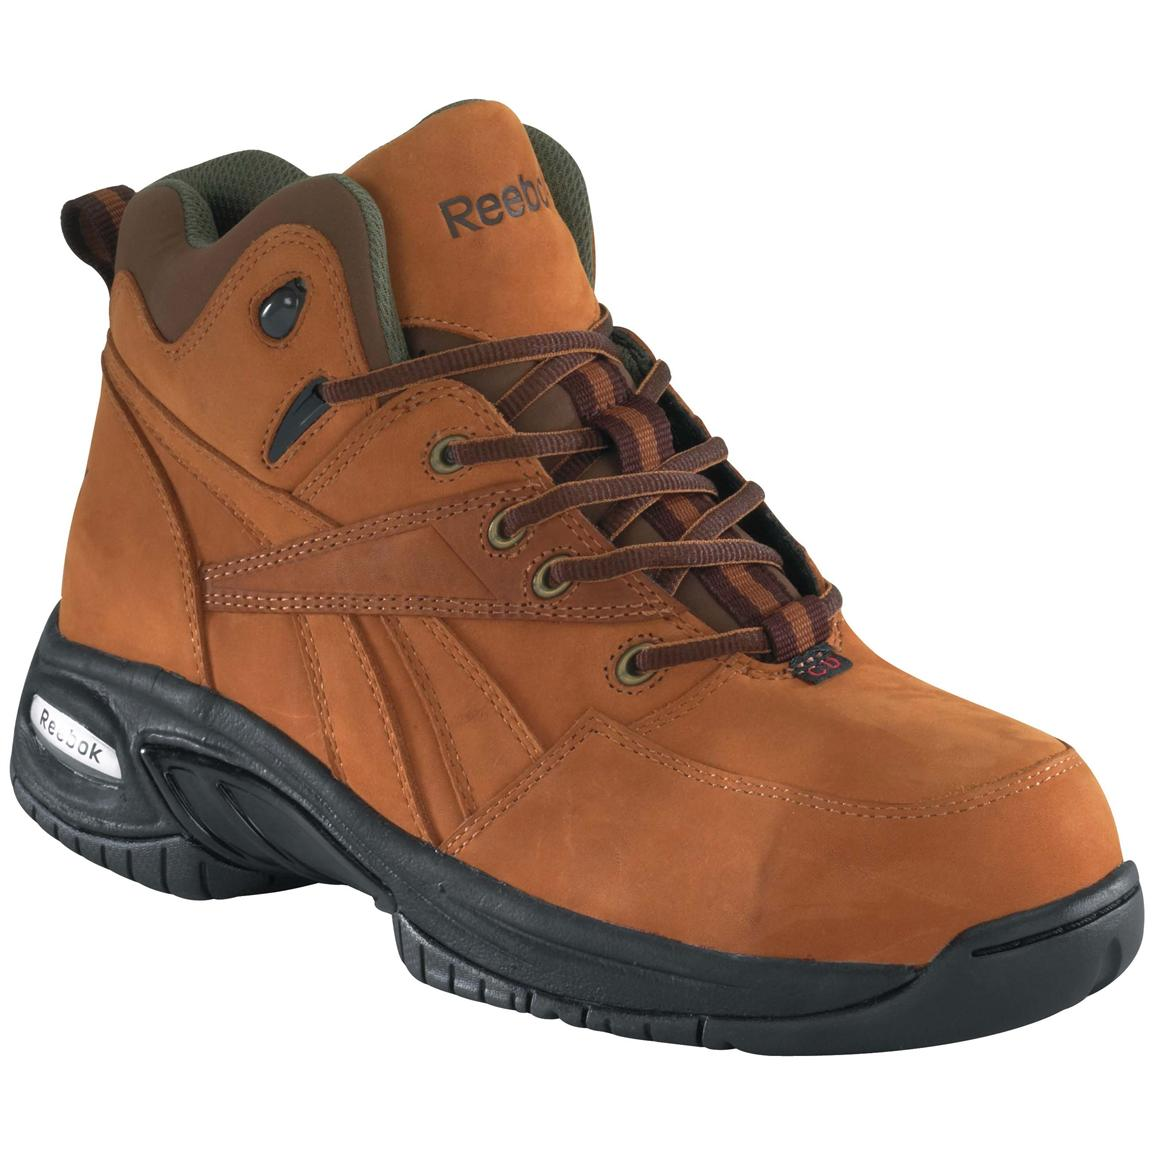 Women's Reebok® Composite Toe Hiking Boots